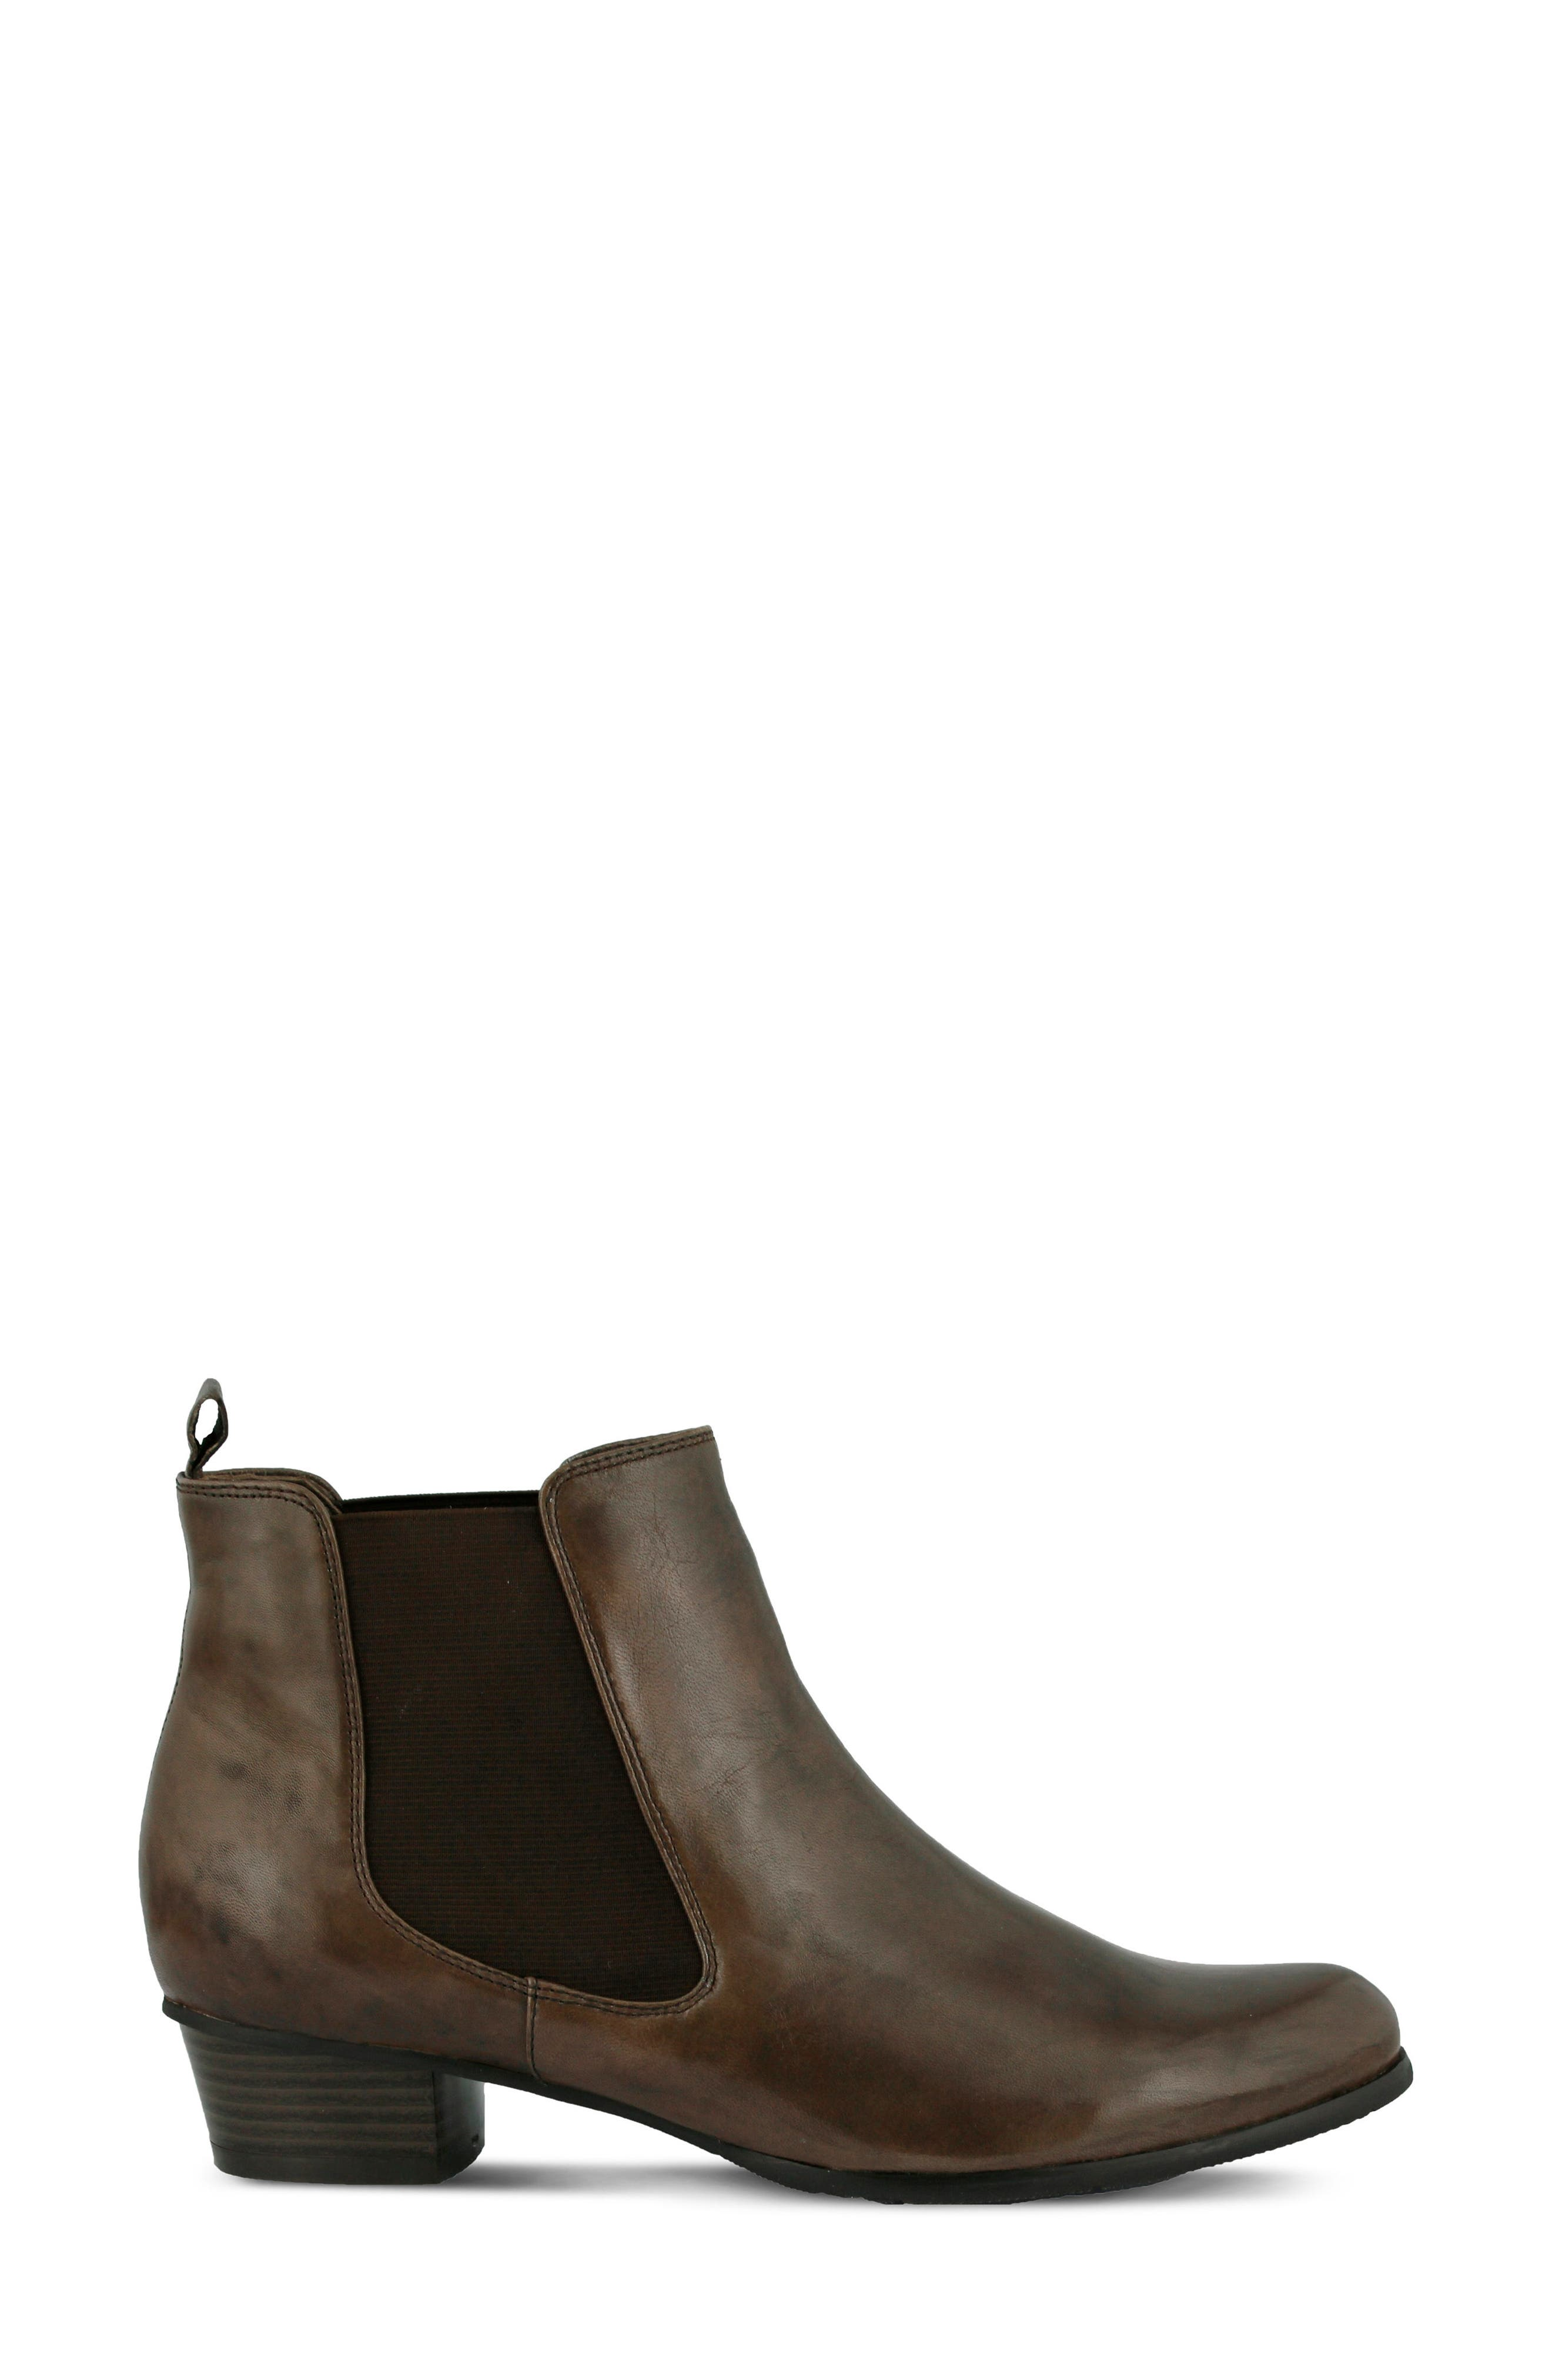 Lithium Chelsea Boot,                             Alternate thumbnail 3, color,                             Taupe Leather